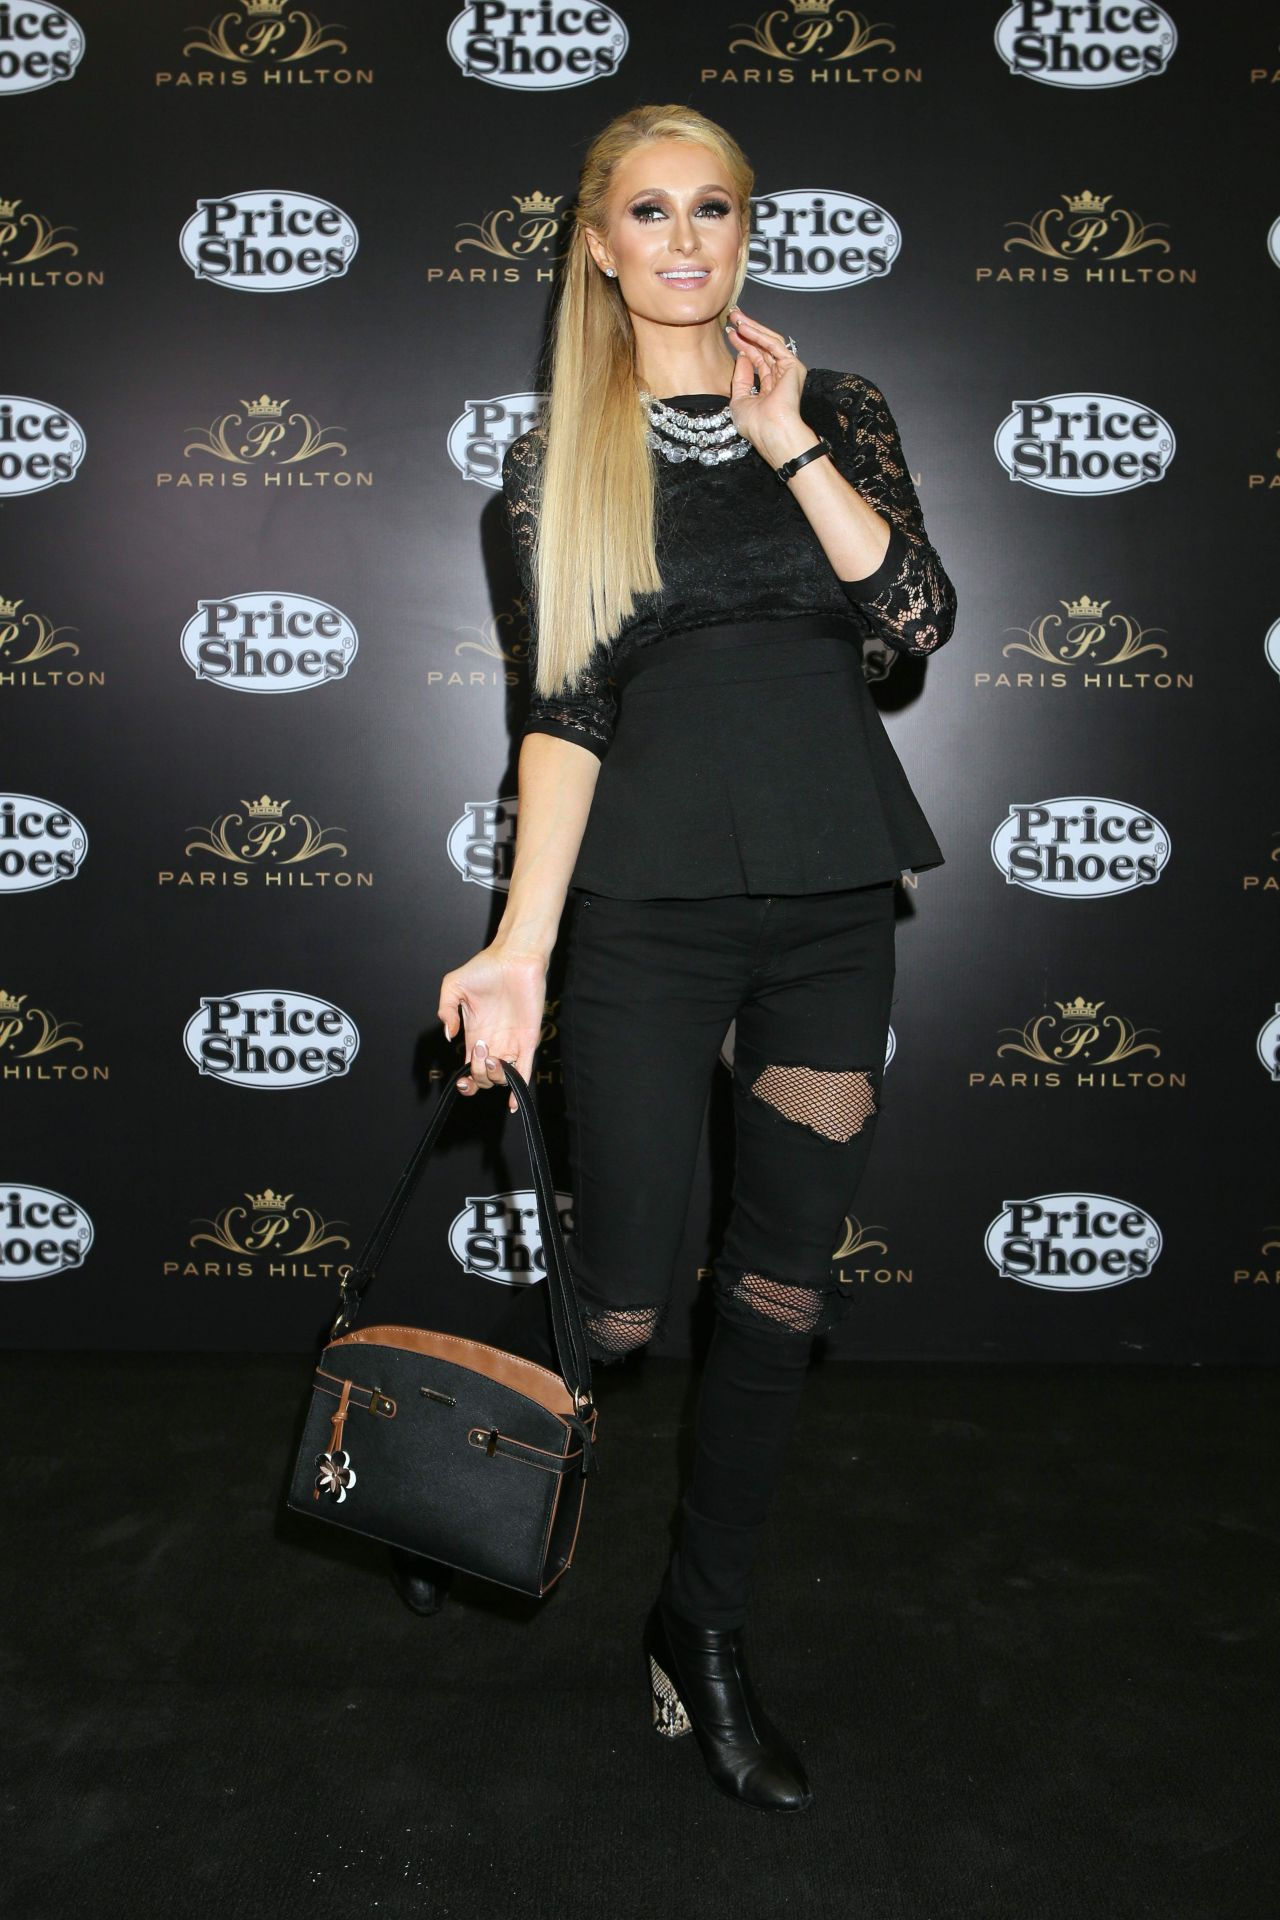 Paris Hilton Launch Of Her New Clothes And Shoes